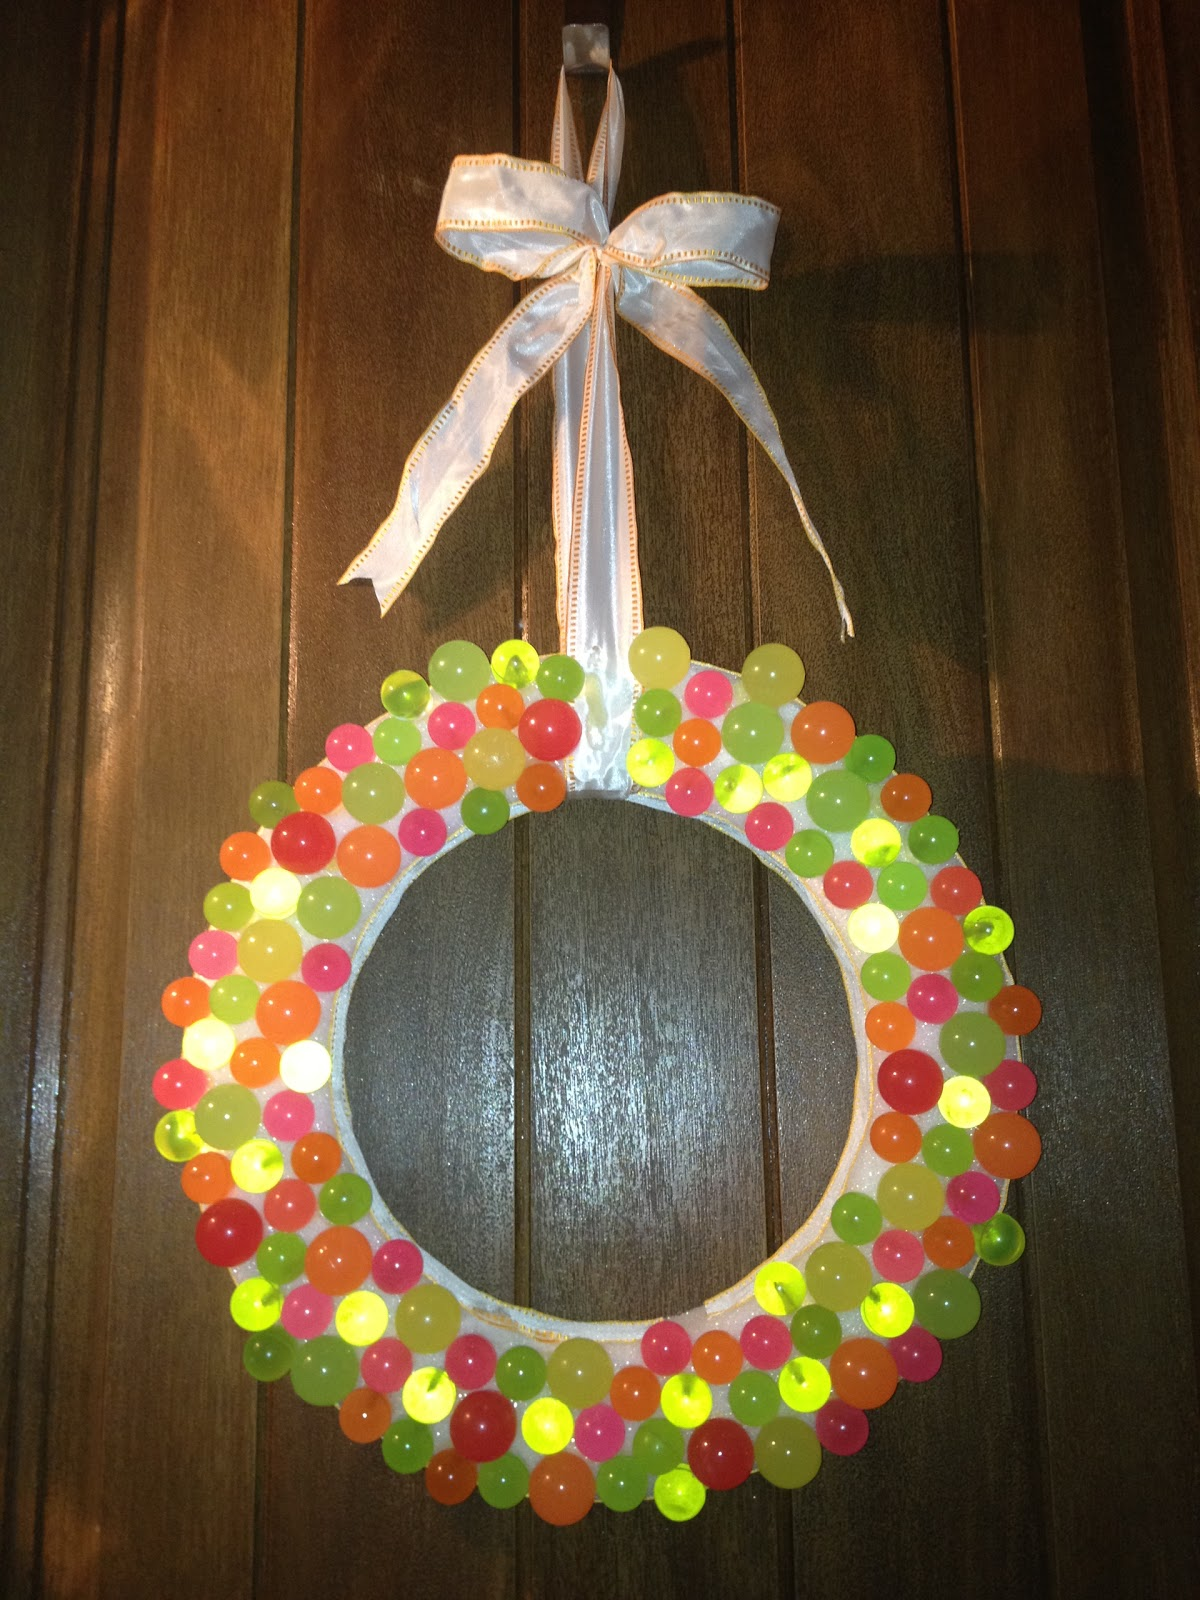 To create a fun summertime wreath using bright colors that would